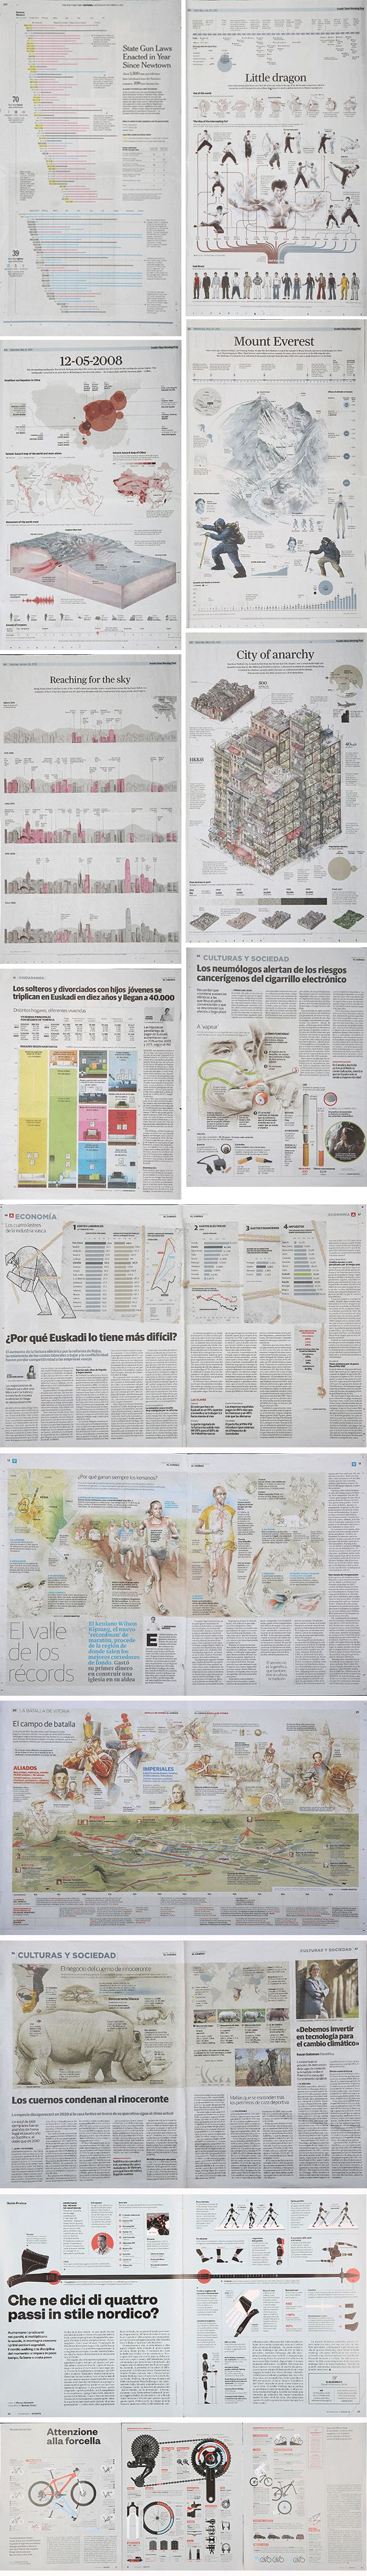 Malofiej Awards #22 for Data Visualization & Infographics: Gold winners